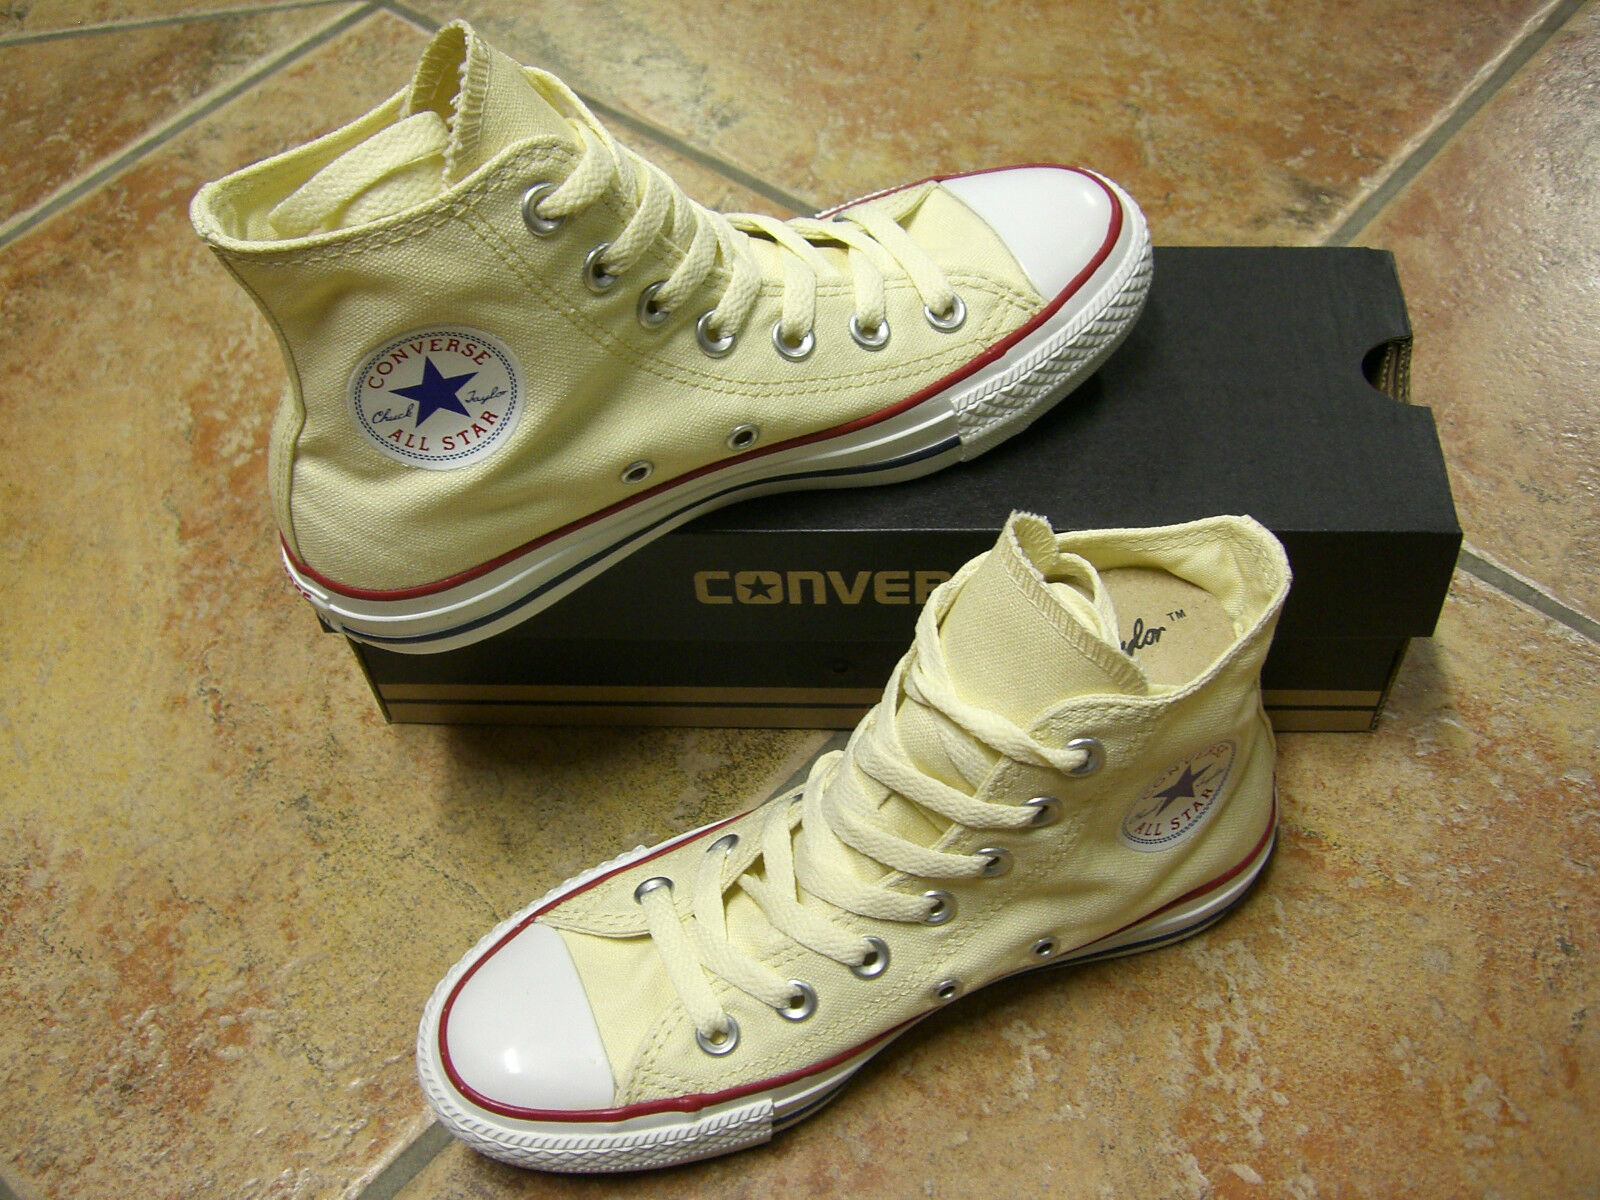 Converse Chucks All Star HI Gr.43 WHITE WEISS  M 9162 NEU TRENDY TOP